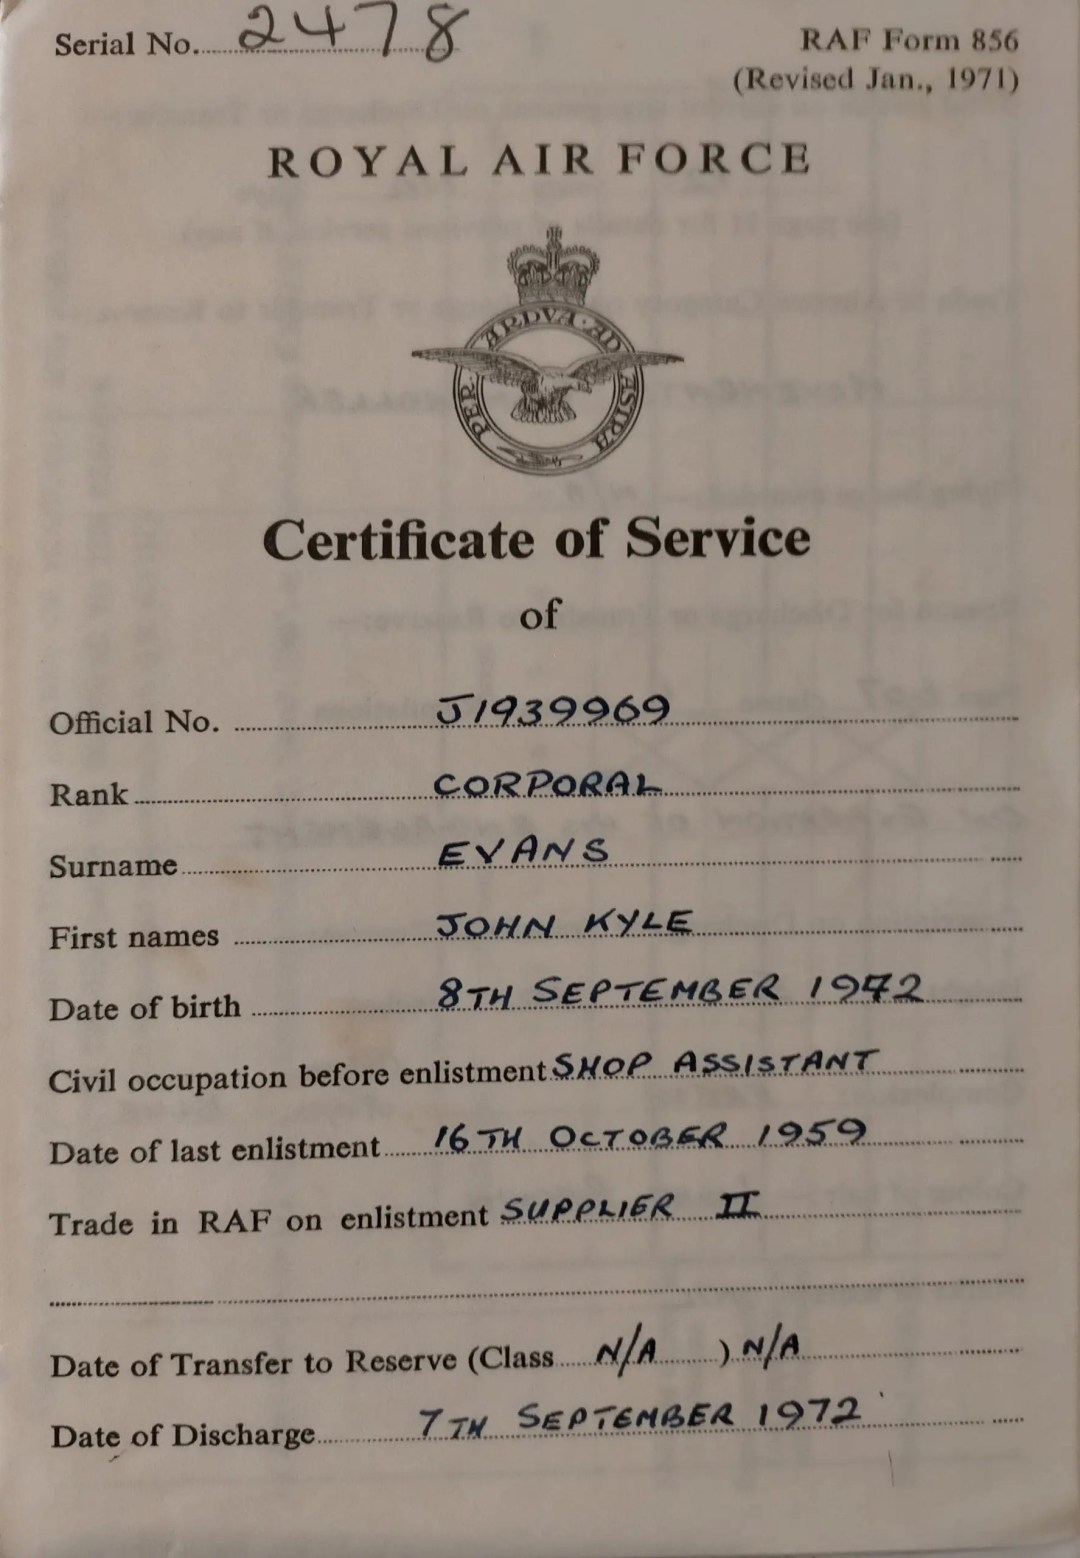 John Evans Certificate of Service Page 1